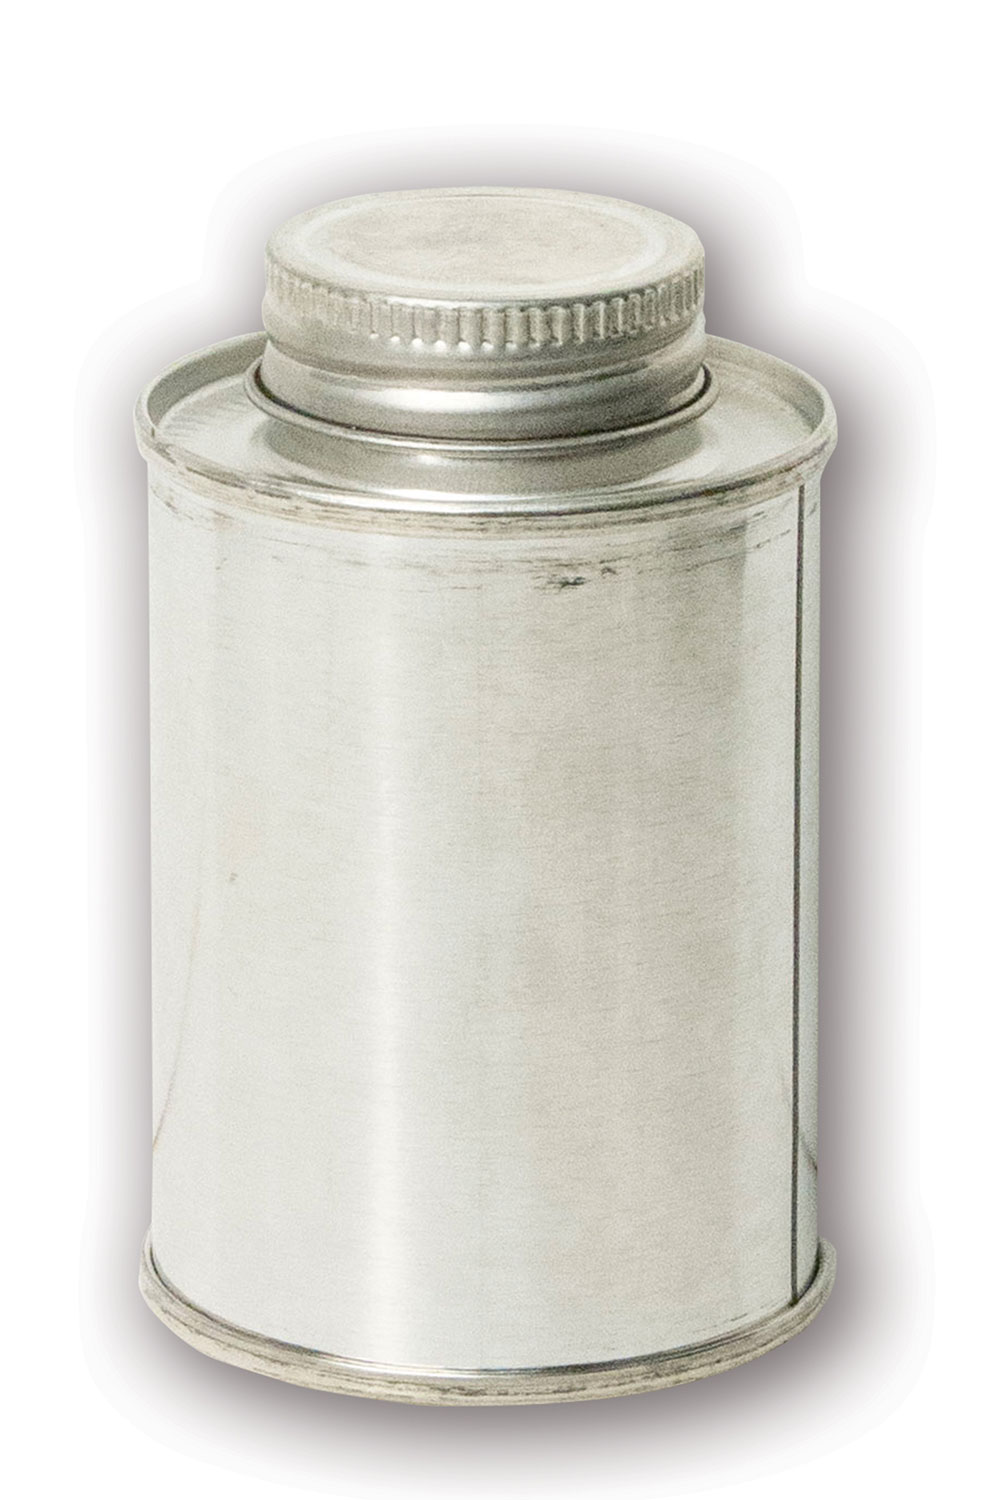 4 oz Metal Can#(stainless steel w/cap)#Item ACC2102